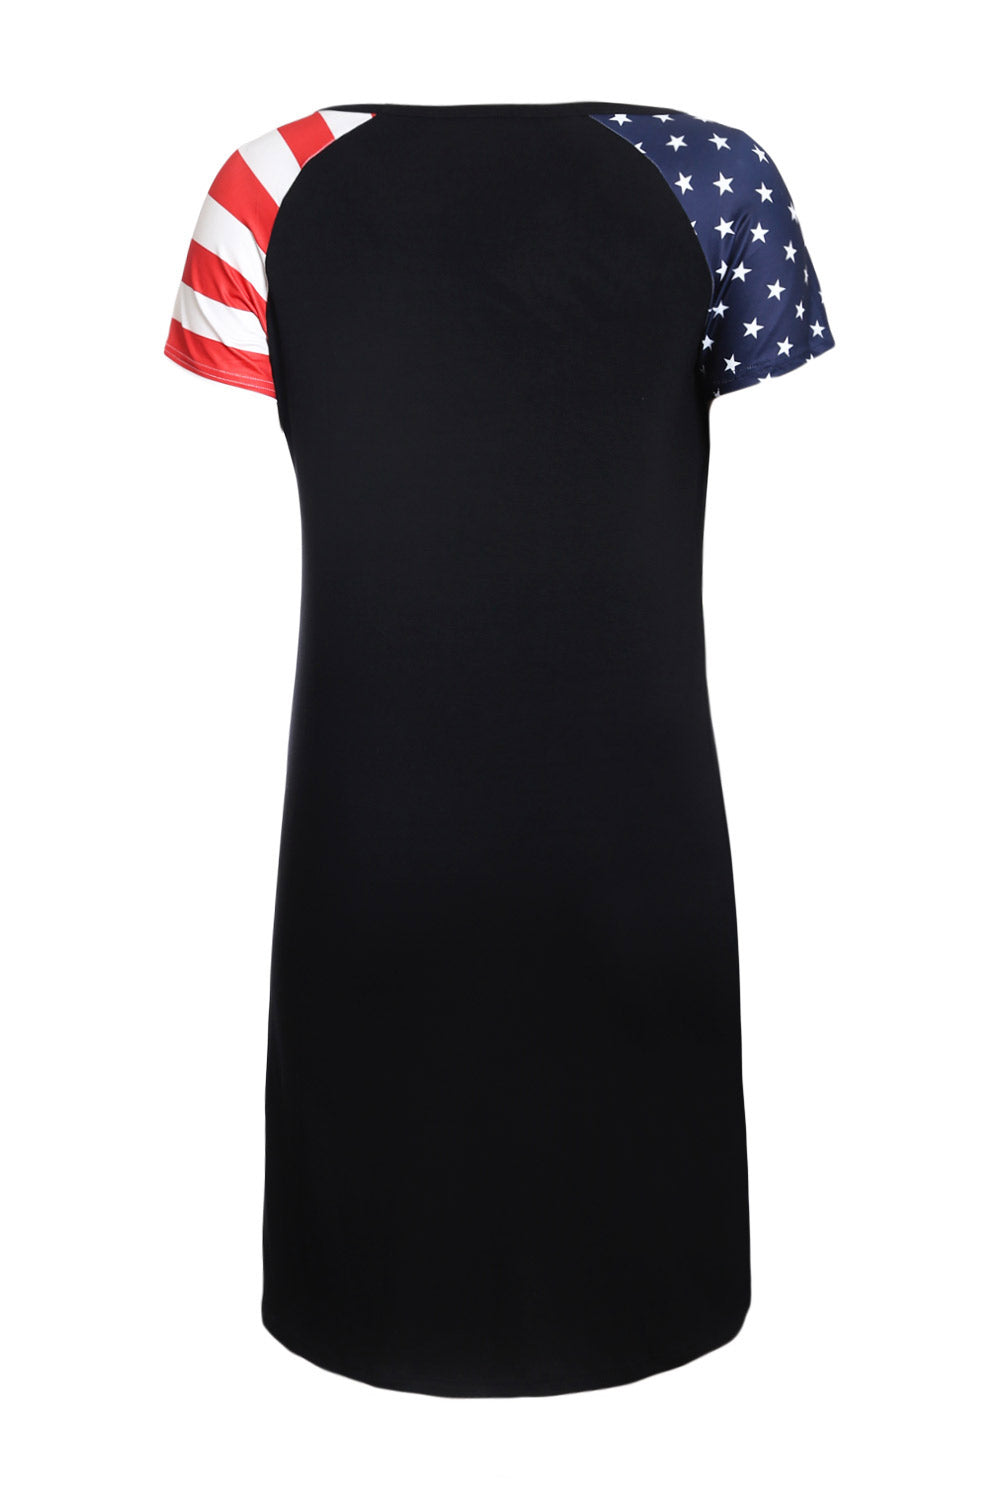 Black Patriotic Tee Dress